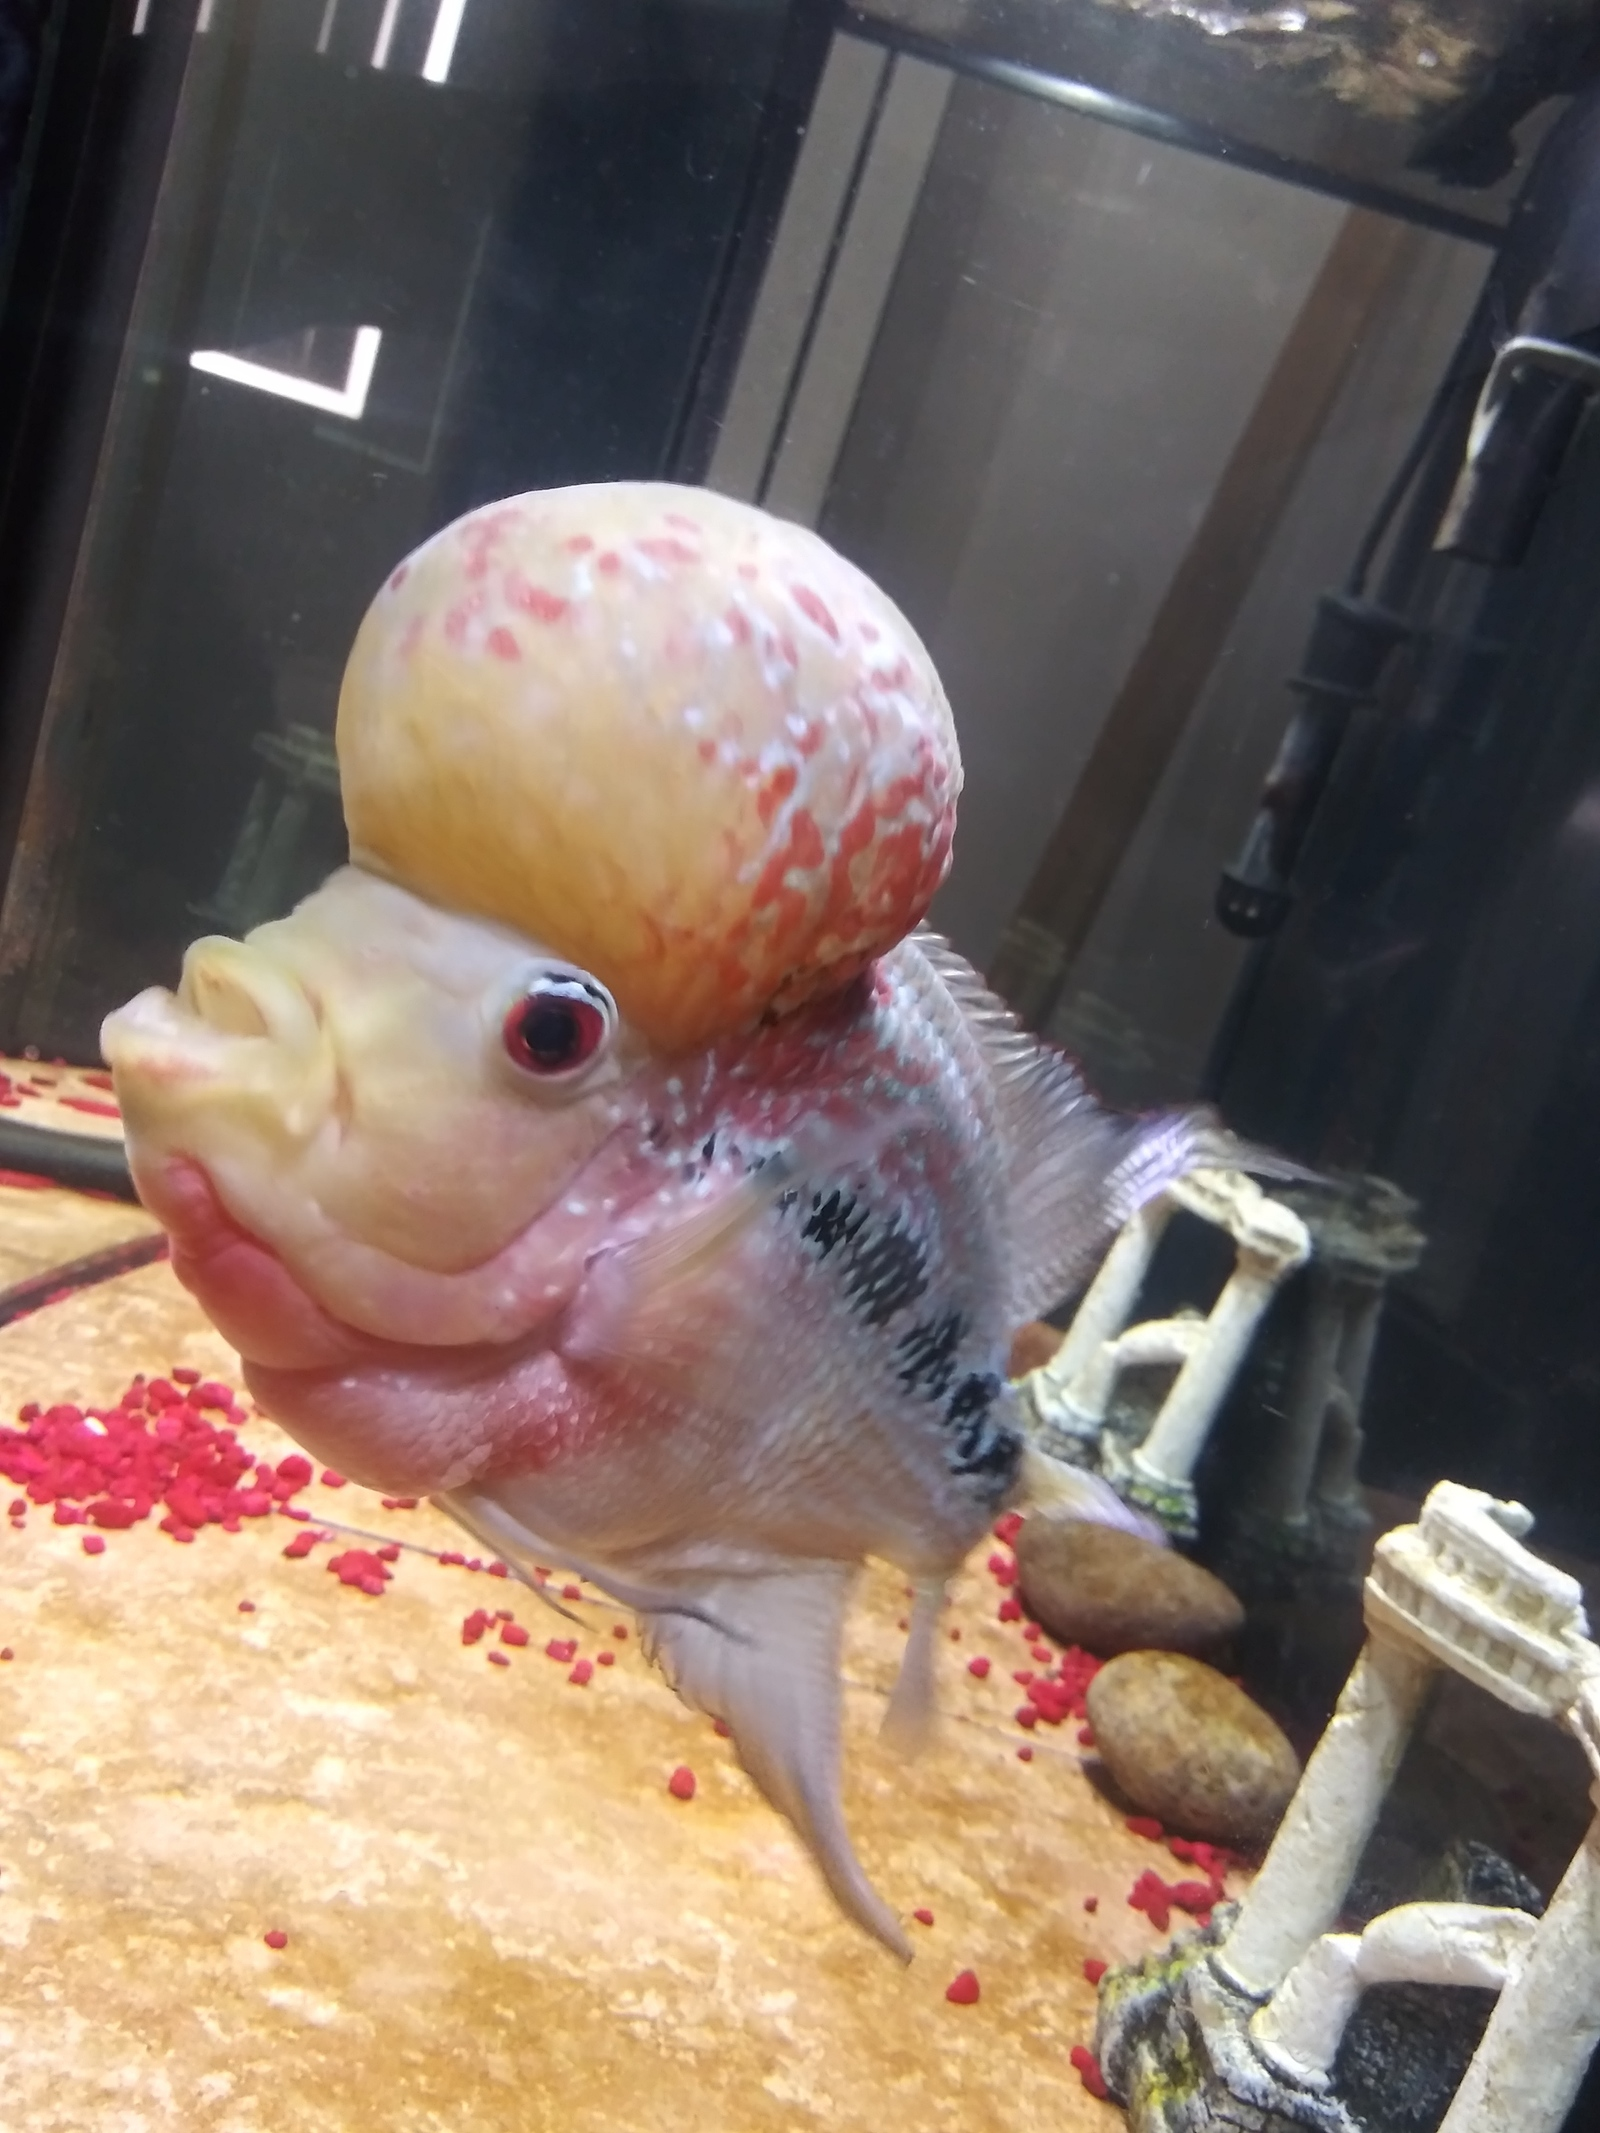 Nutjob the flowerhorn | by david washington